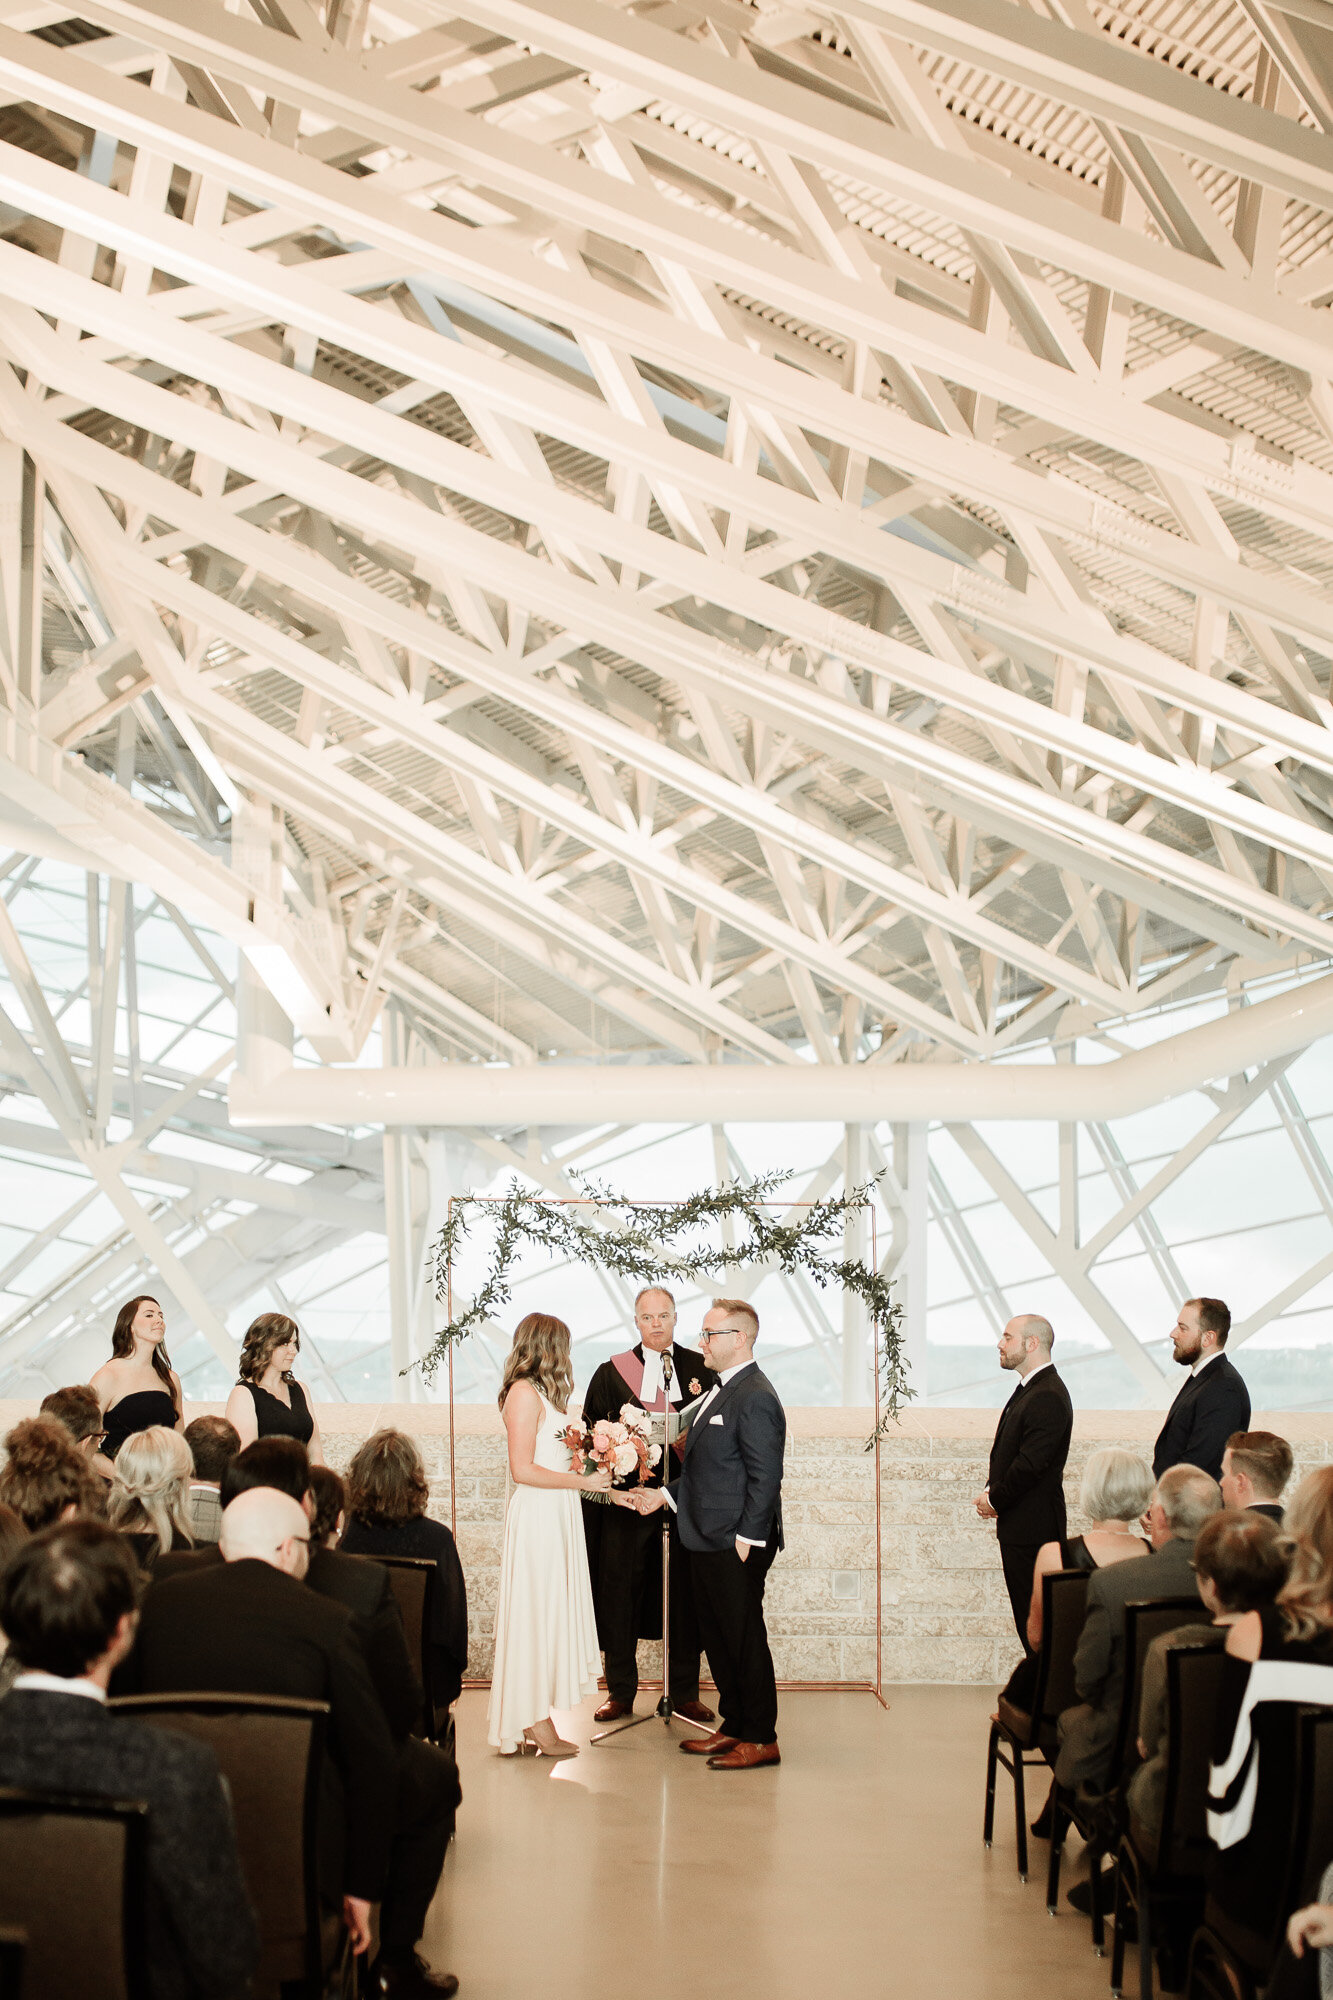 Wedding at Human Rights Museum - Stone House Creative